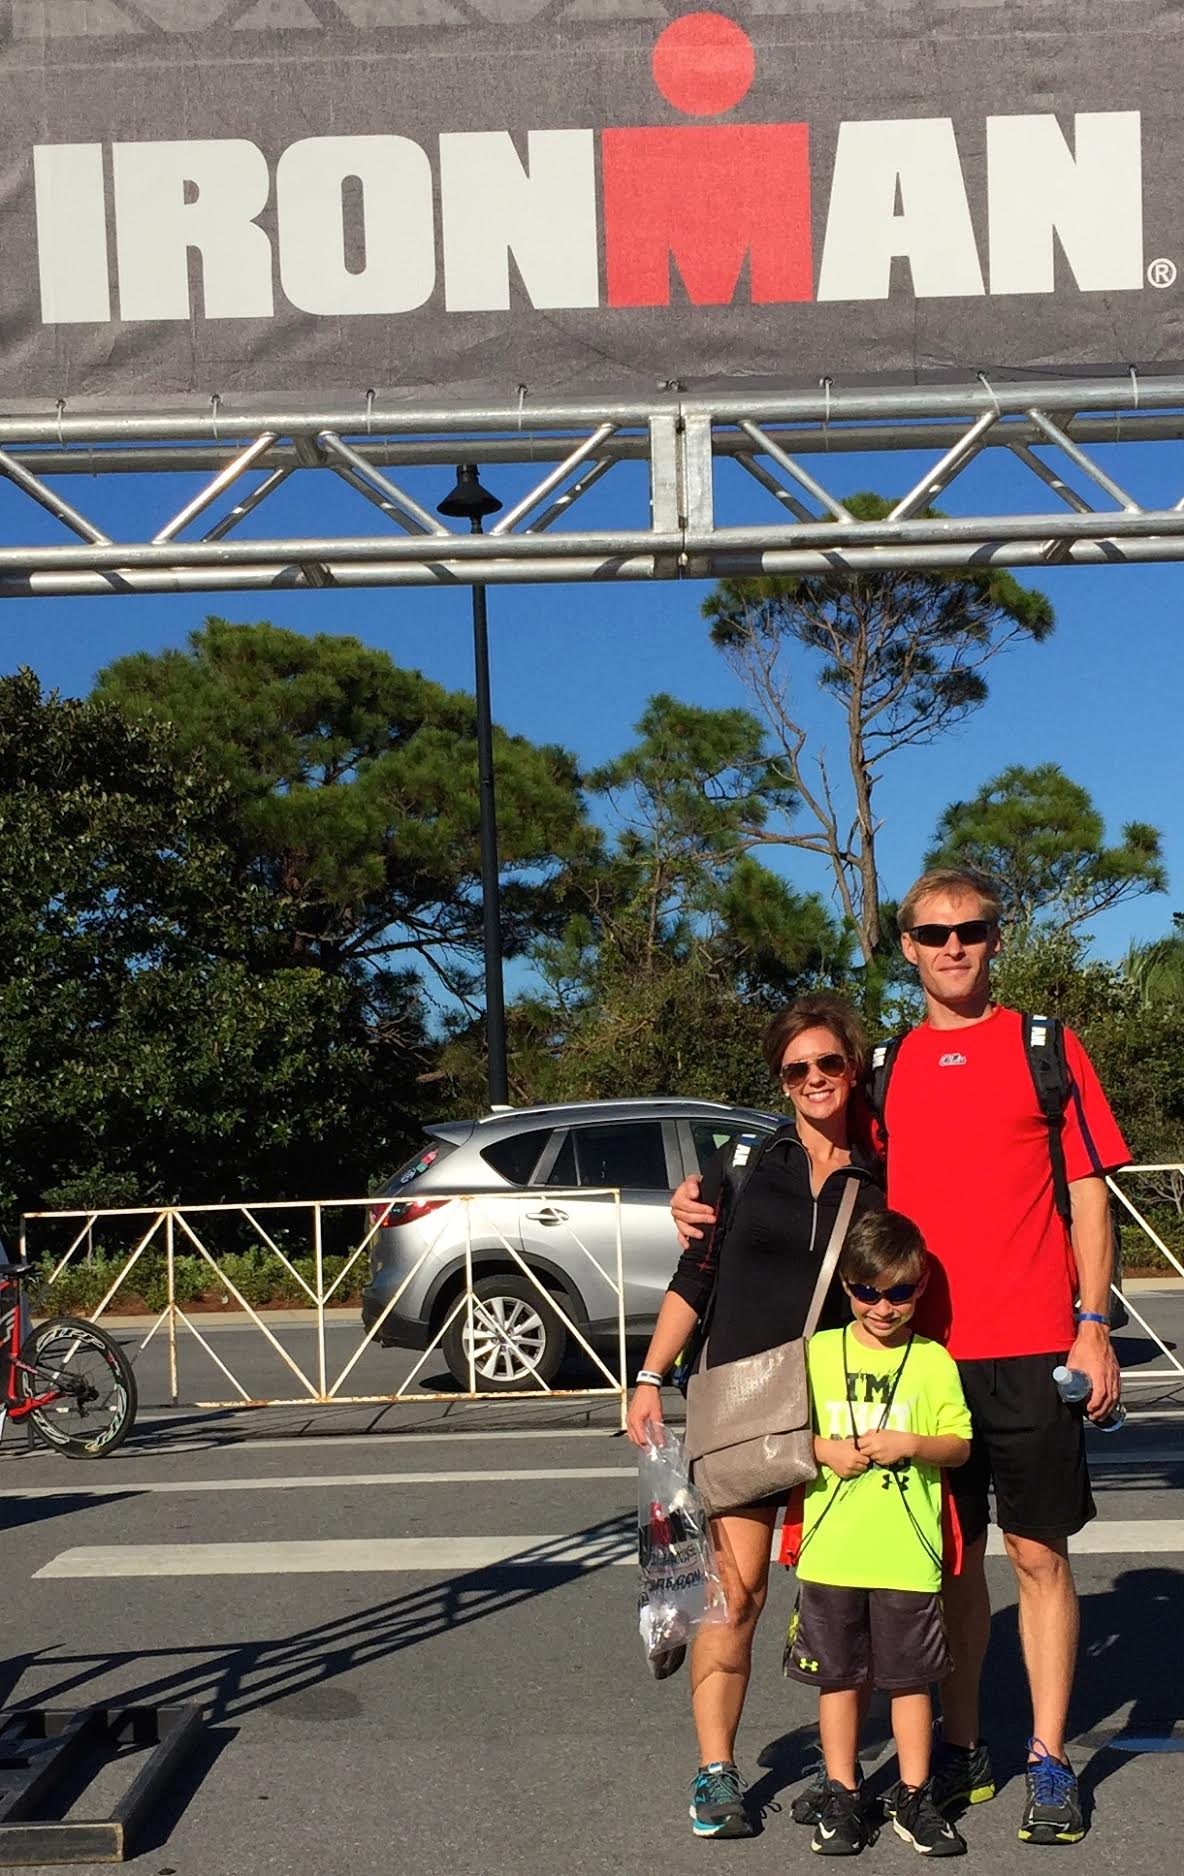 Robert and Sarah Garrett with their son Everett at the Ironman Triathlon. Photo submitted.